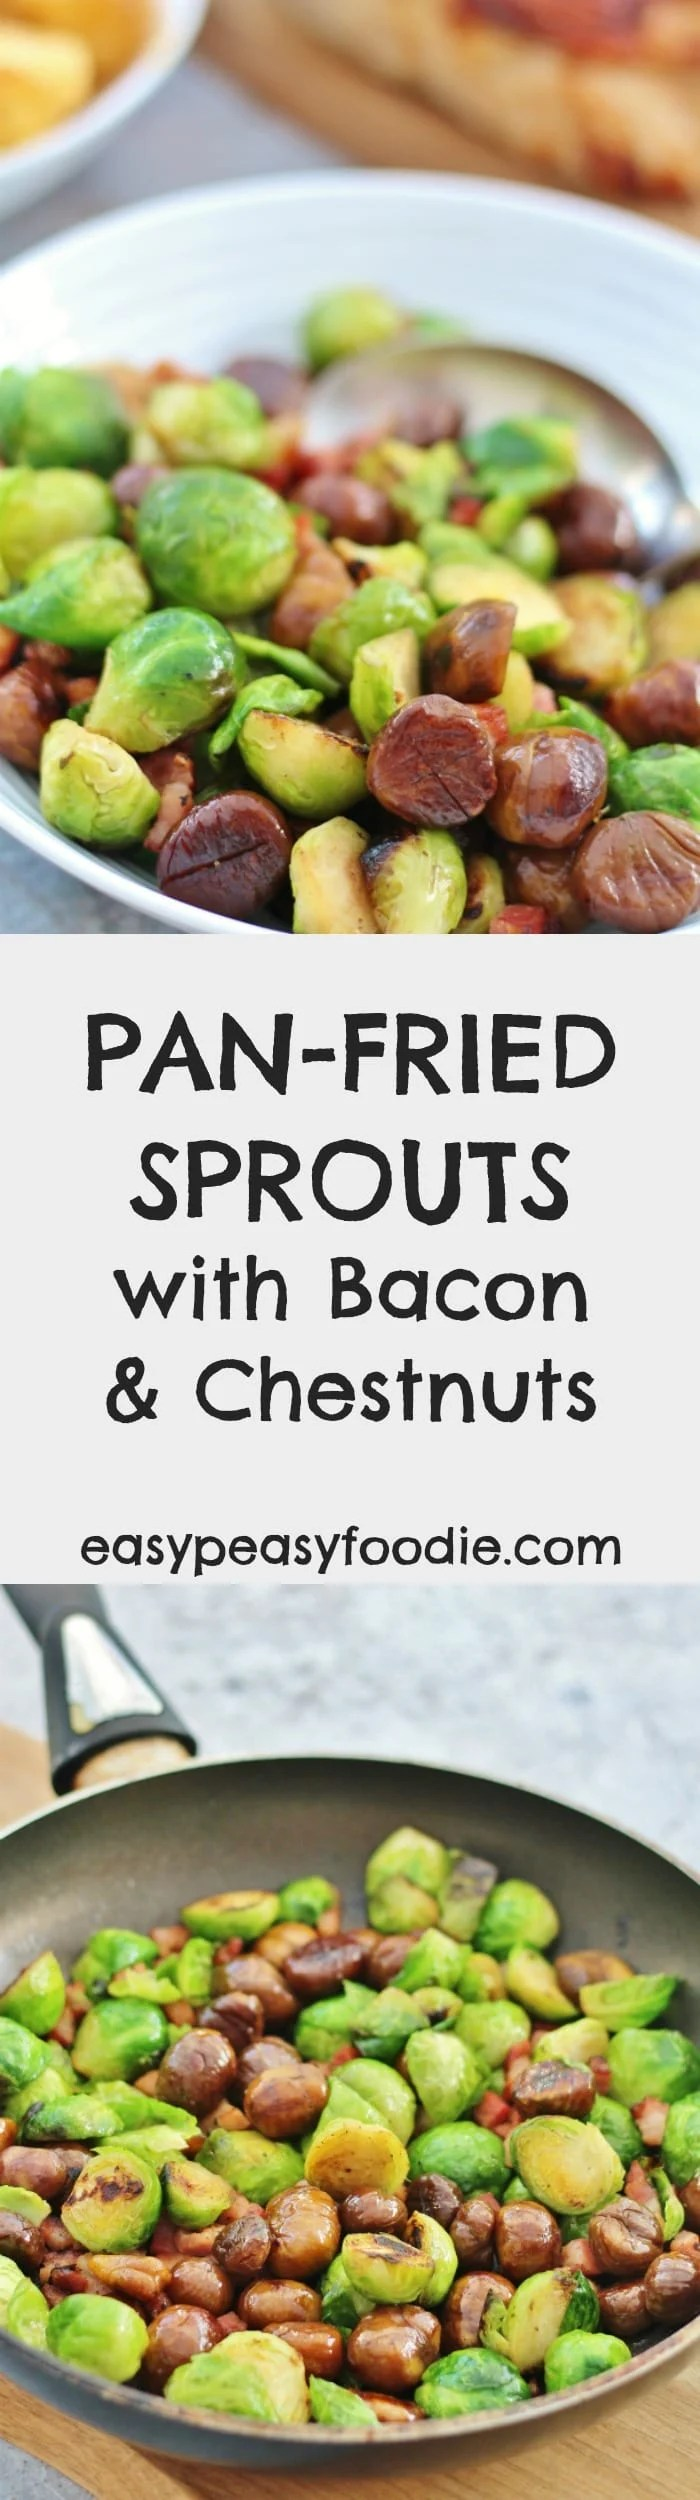 Need a super easy, but totally delicious recipe for sprouts this Christmas? Then this Pan Fried Sprouts with Chestnuts and Bacon recipe is your answer. My easy peasy twist on this Christmas classic, this sprout dish uses only 3 ingredients and just 1 pan…and can be ready in under 15 minutes! #brusselssprouts #brusselsprouts #sprouts #chestnuts #bacon #christmasdinner #easychristmasdinner #easychristmasrecipes #christmasrecipes #christmasfood #christmasmenu #easychristmas #easypeasyfoodie